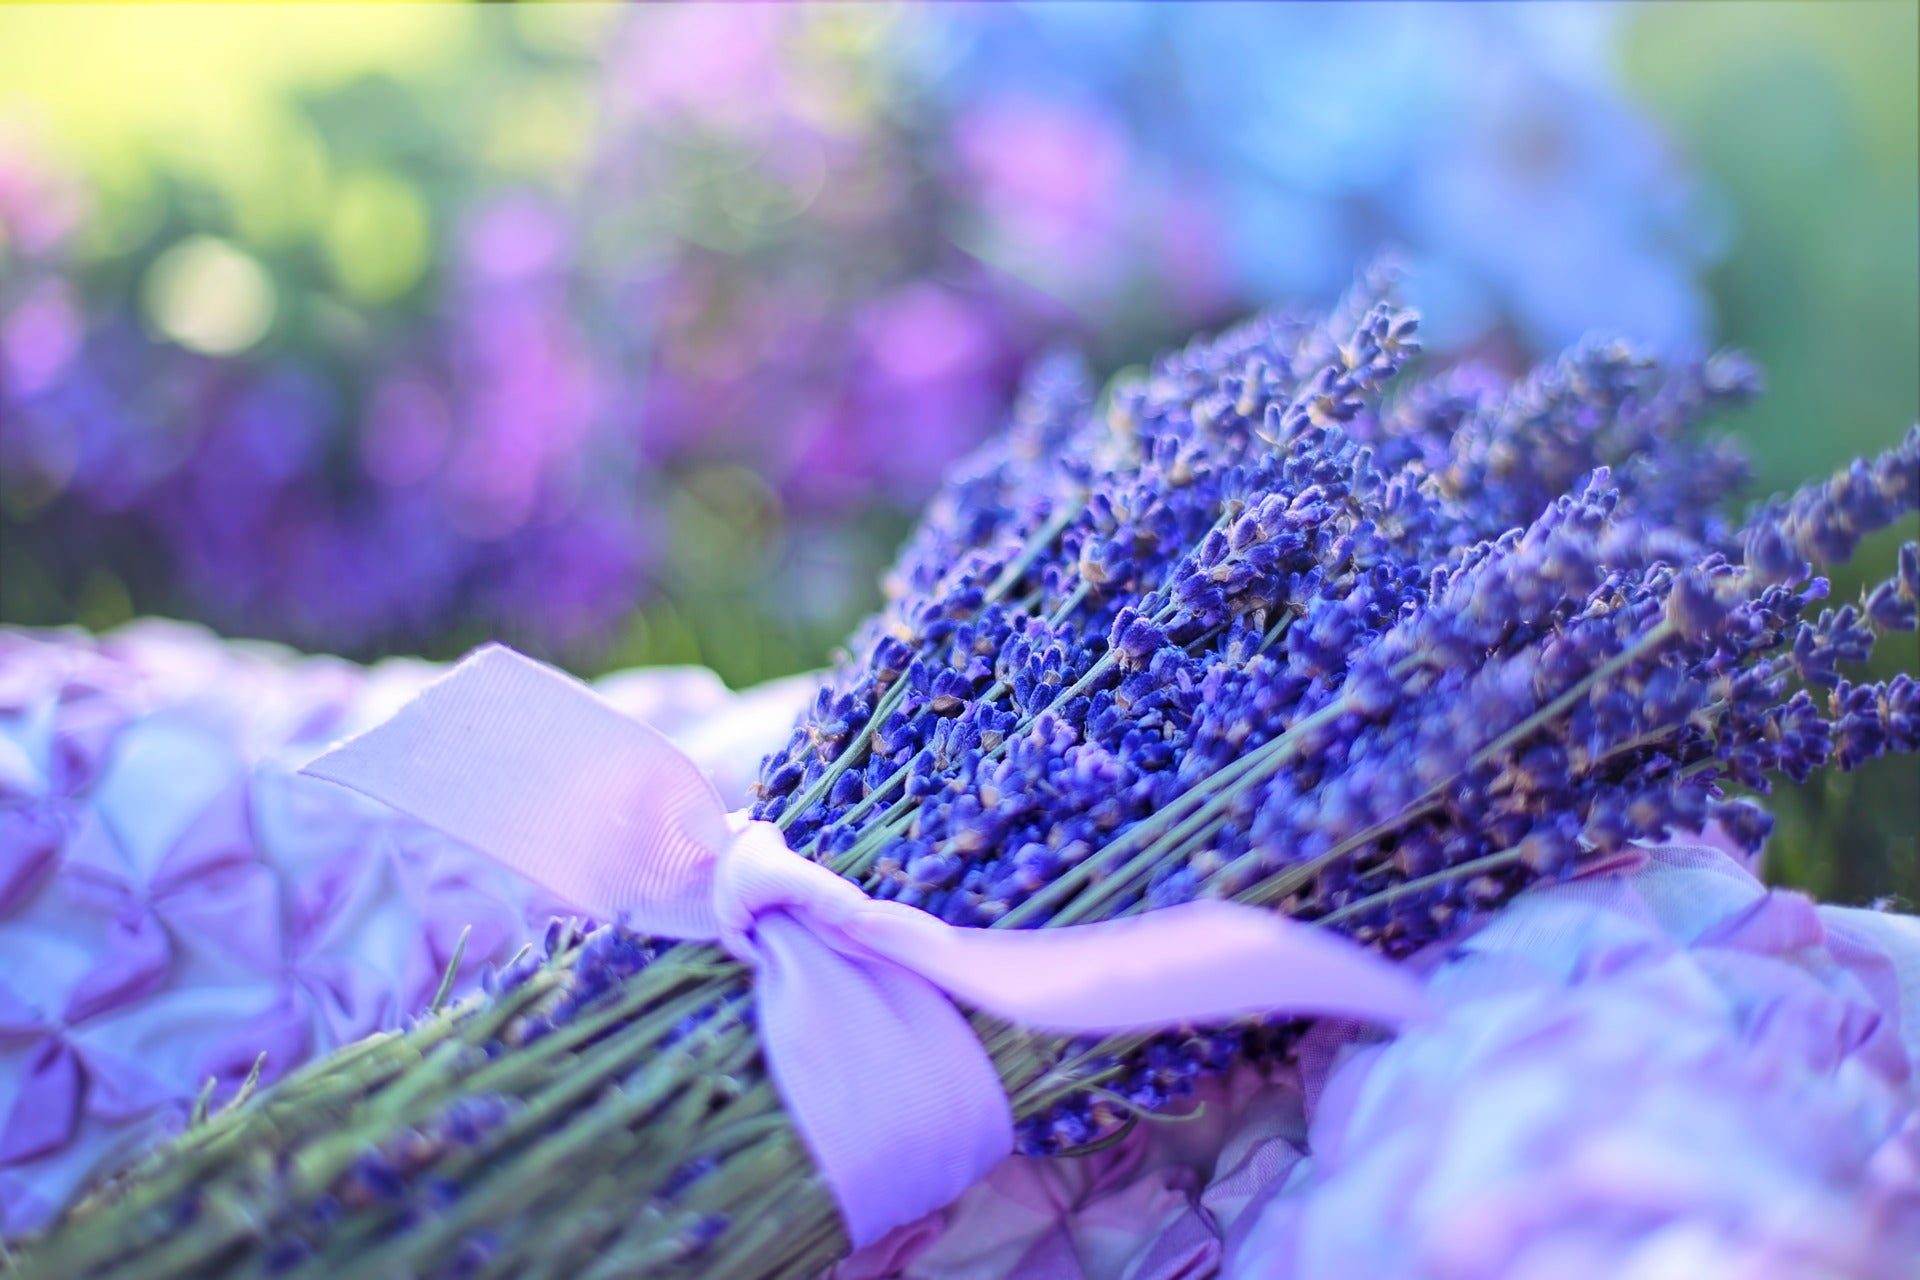 Lavender essential oil has calming properties